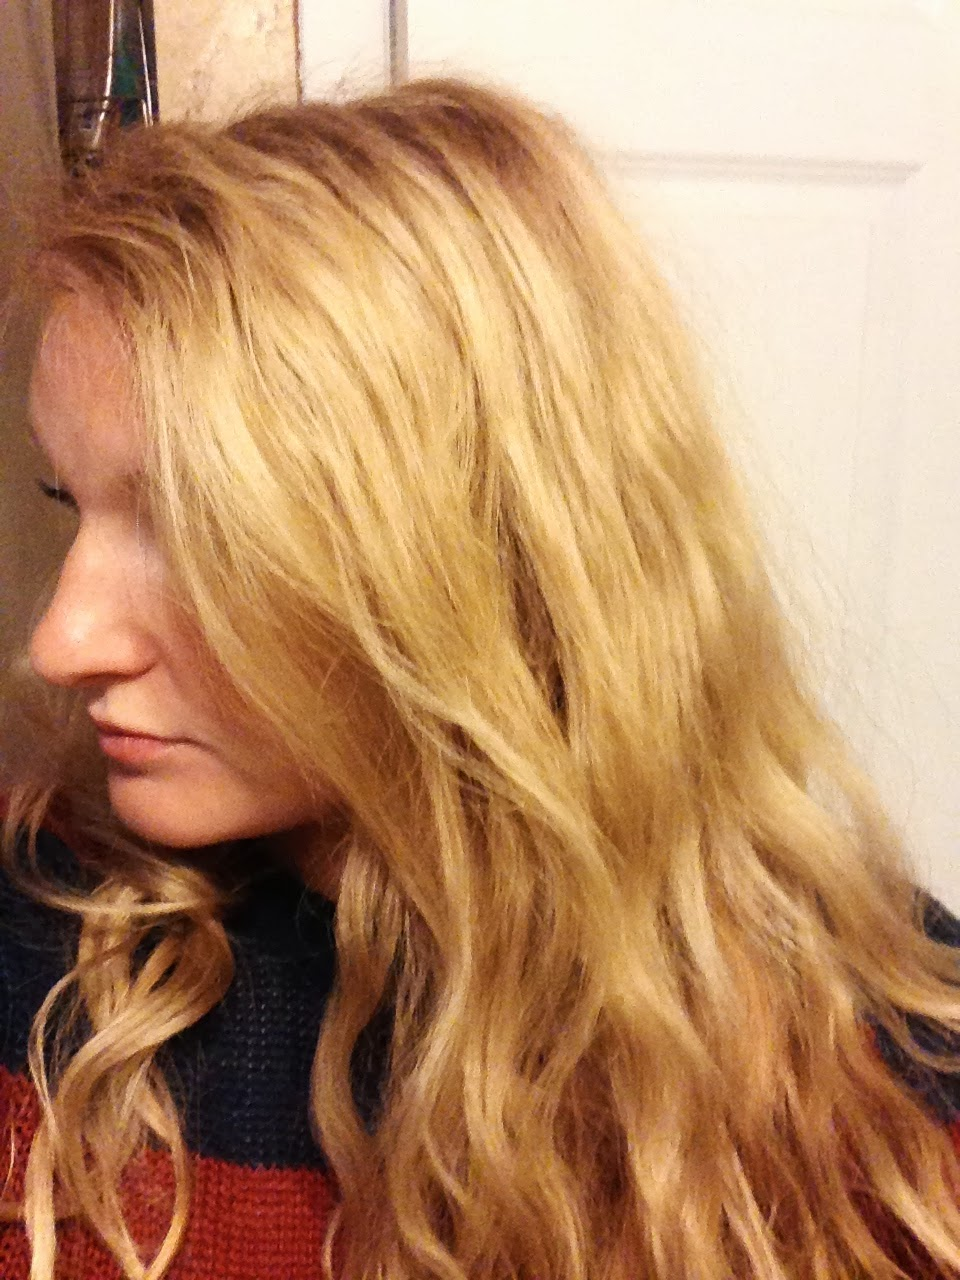 Blonde Hair Without the Salon - Helene in Between